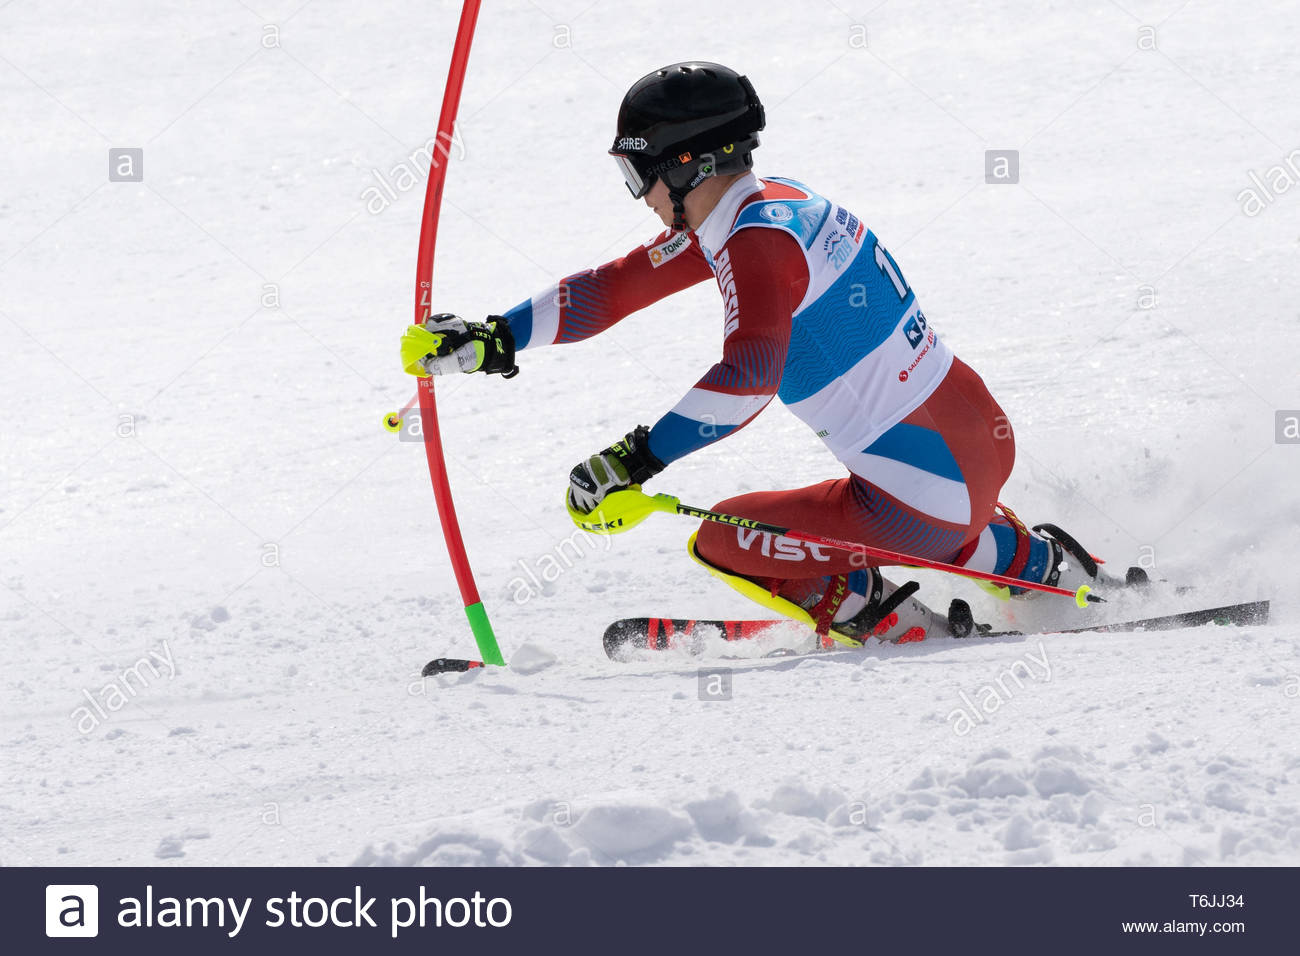 MOROZNAYA MOUNTAIN, KAMCHATKA, RUSSIA - MAR 29, 2019: International Ski Federation Championship, Russian Alpine Skiing Championship, slalom. Mount ski Stock Photo